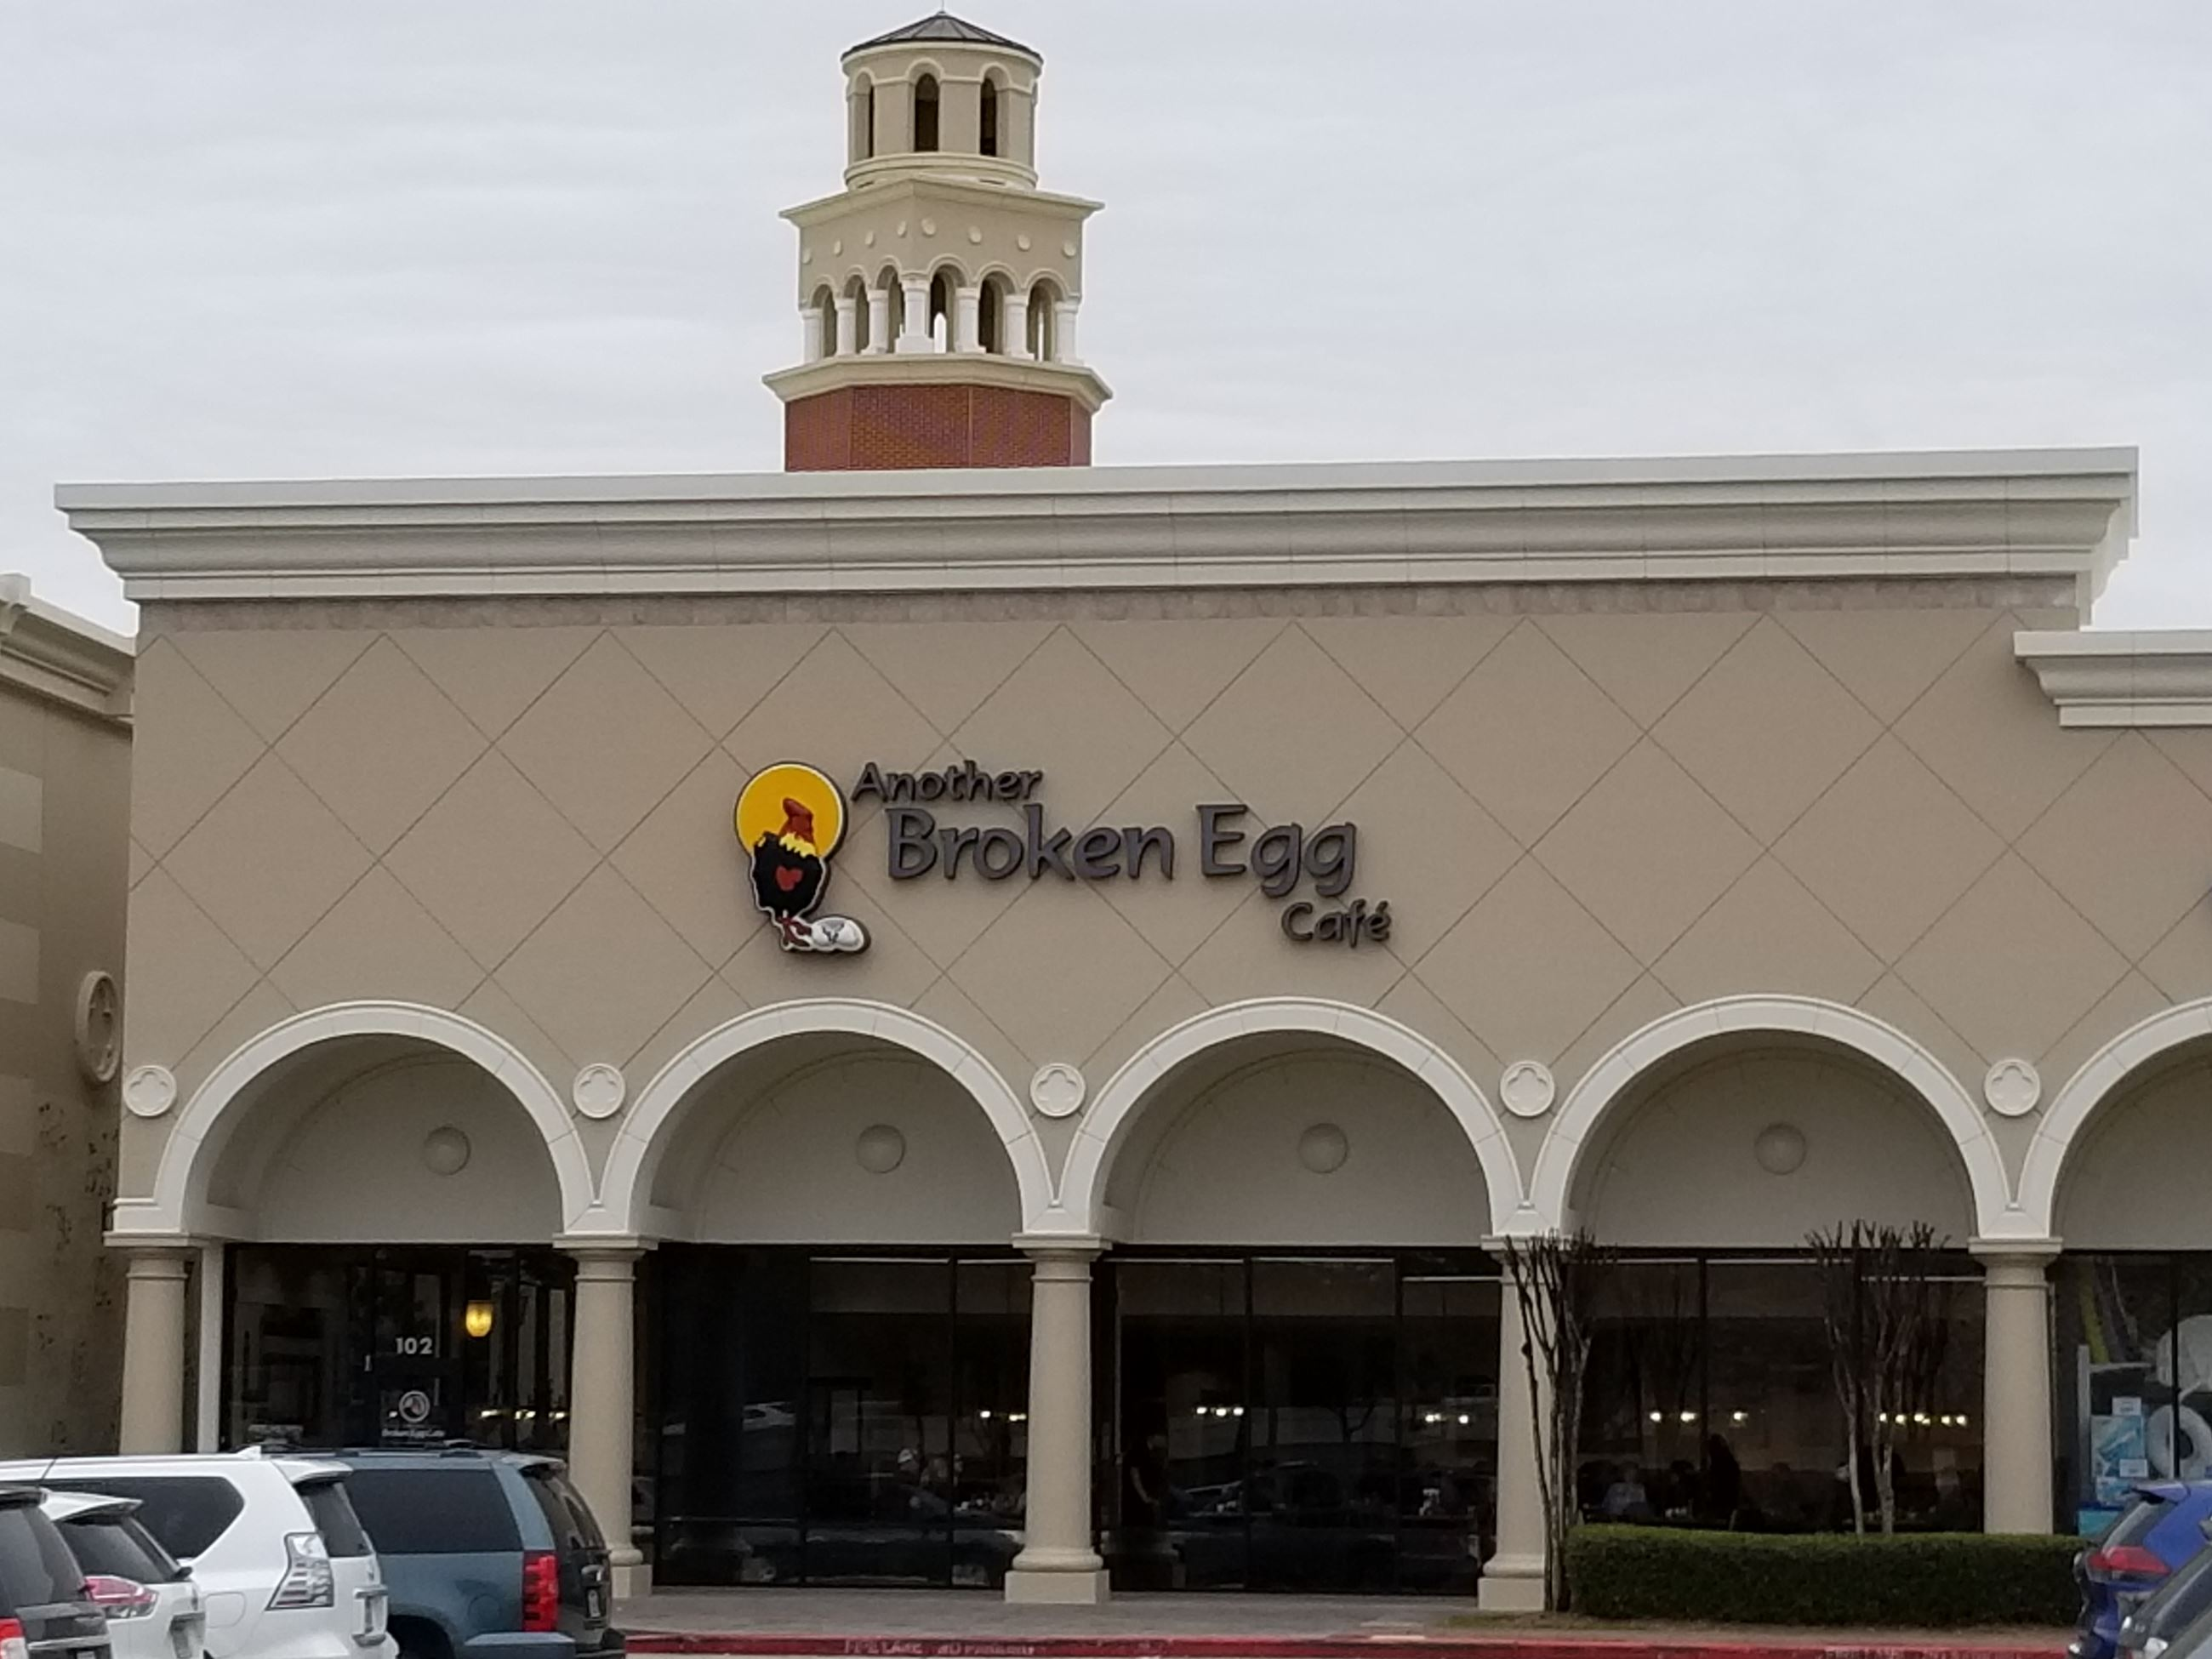 Exterior of Another Broken Egg Cafe